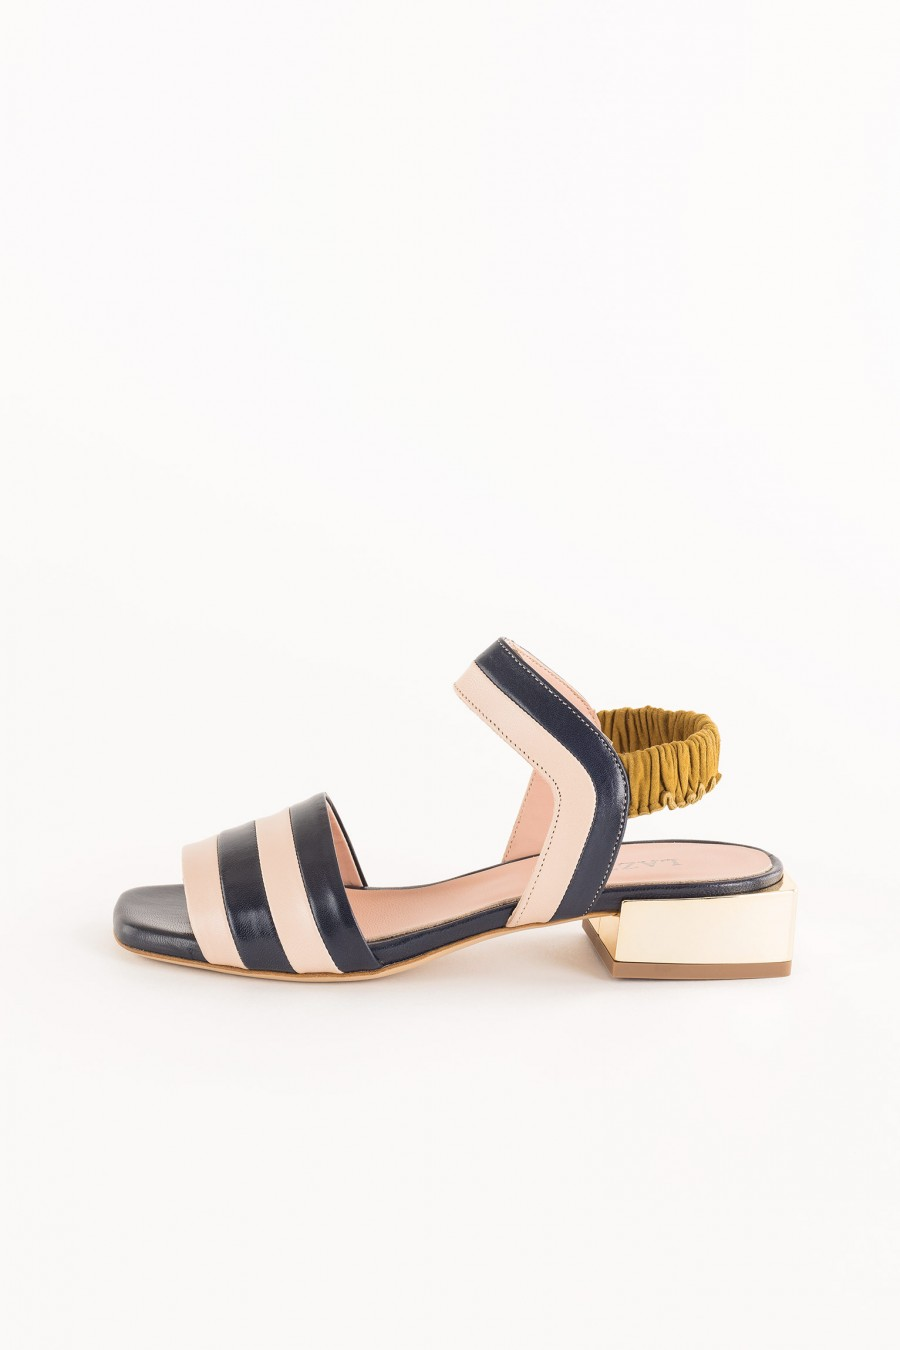 black sandal with low square heel